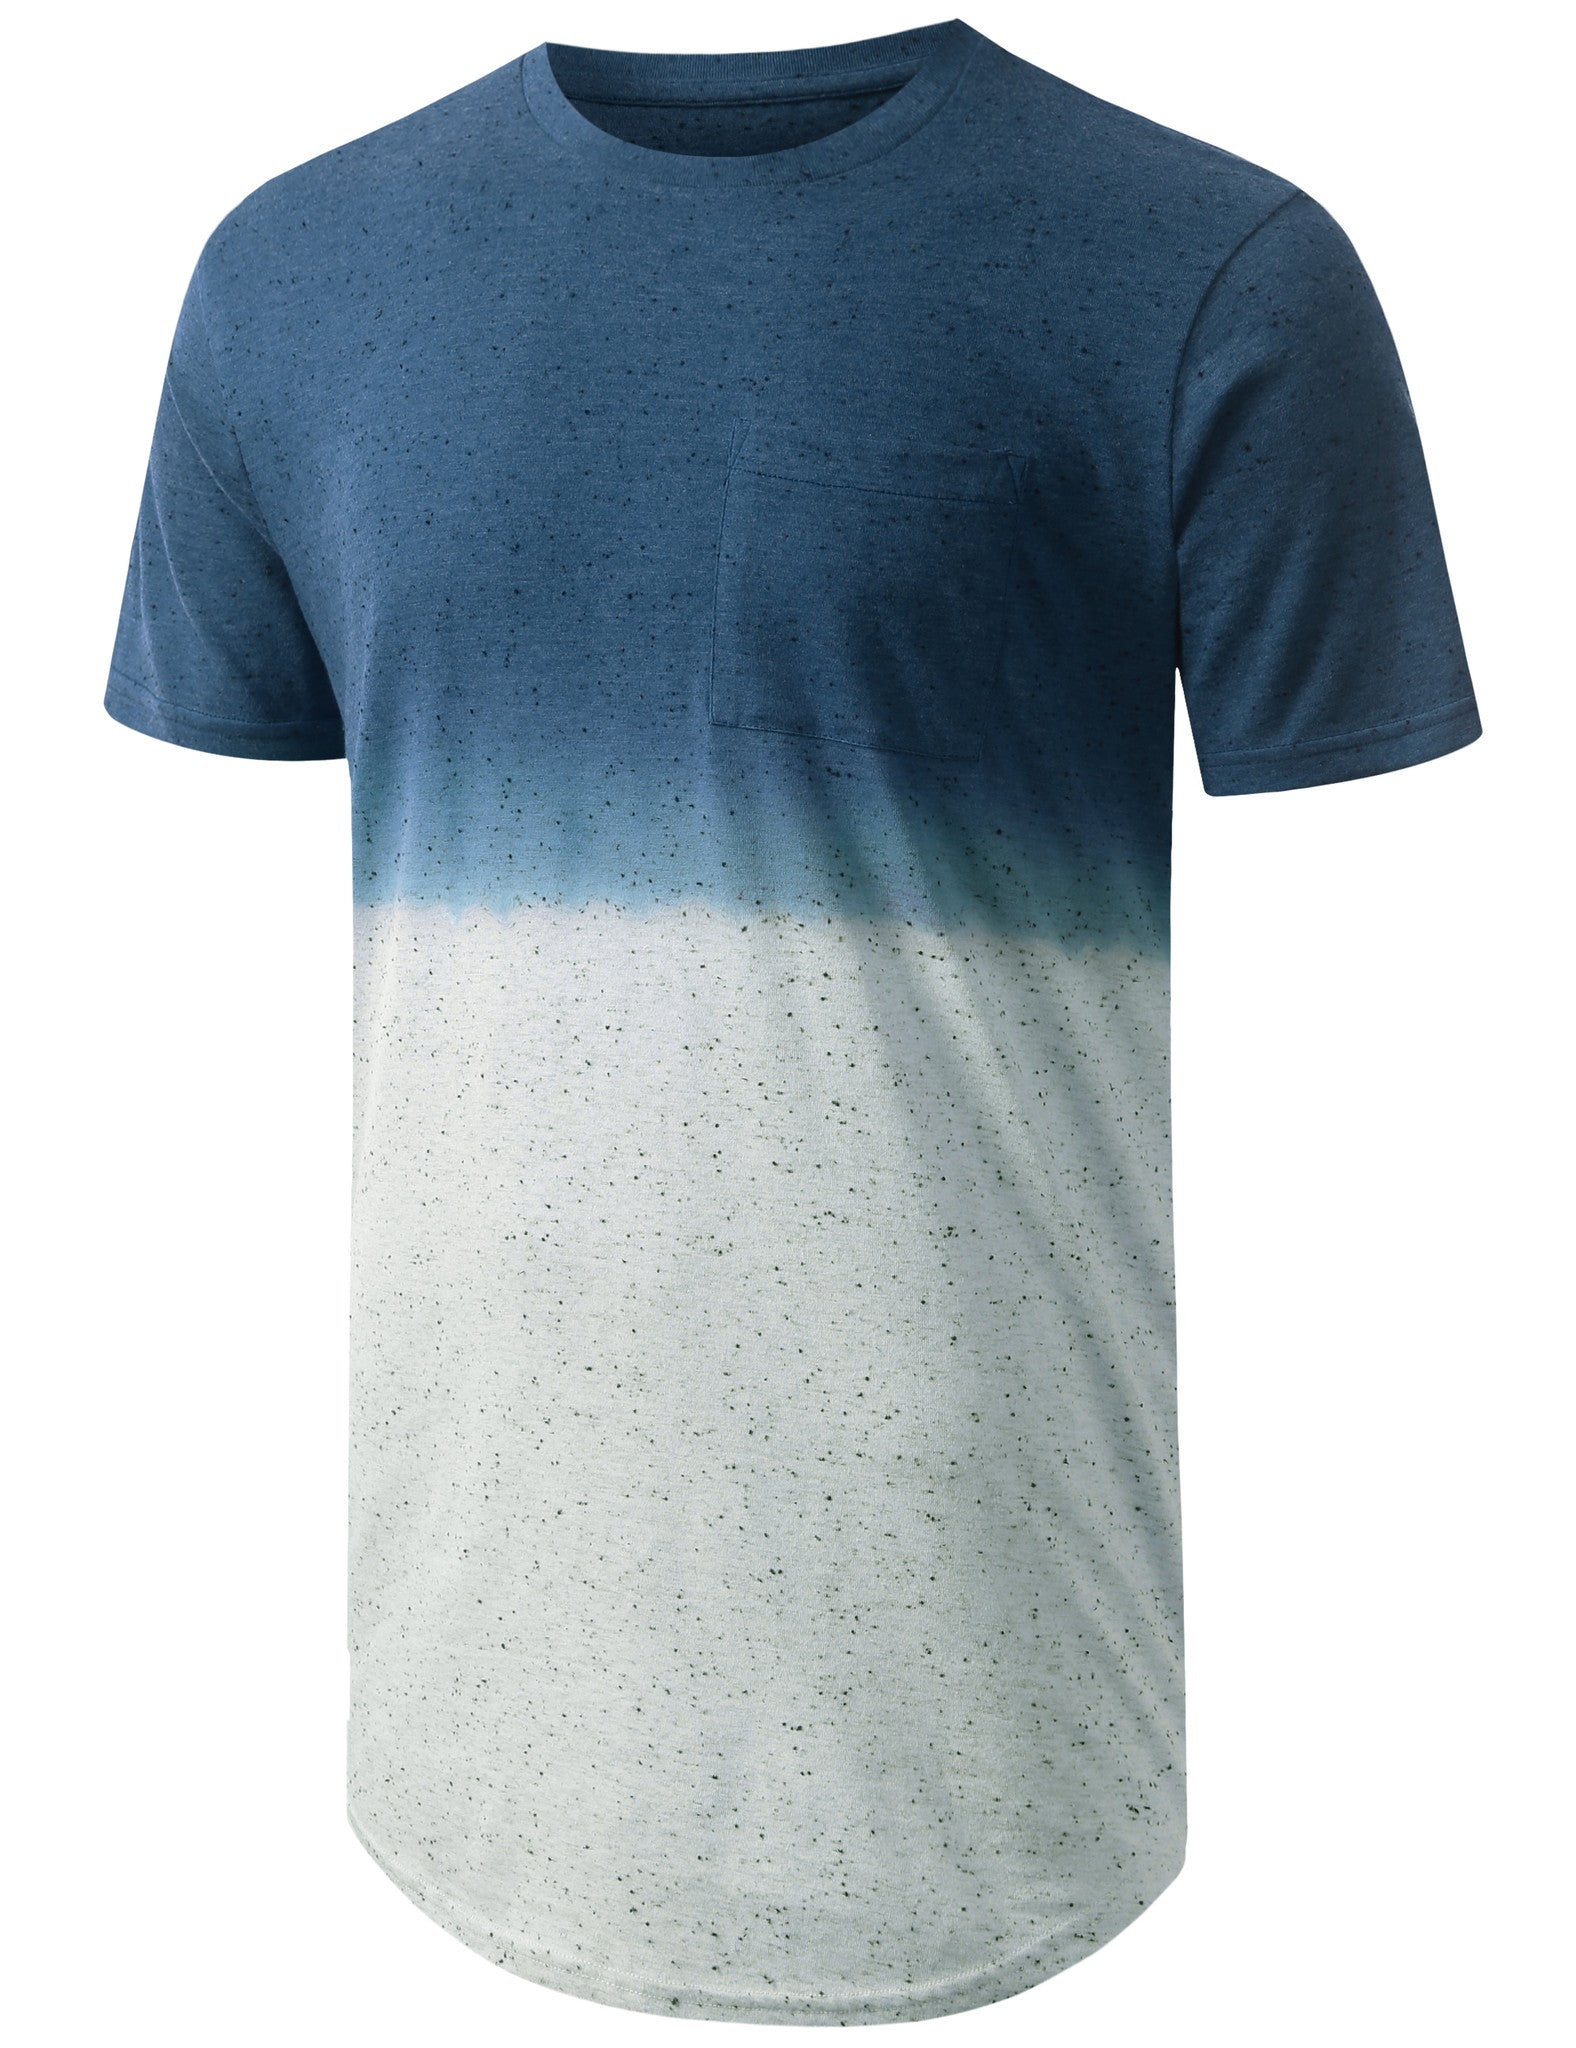 BLUE Gradient Speckle Longline Crewneck Tshirts- URBANCREWS